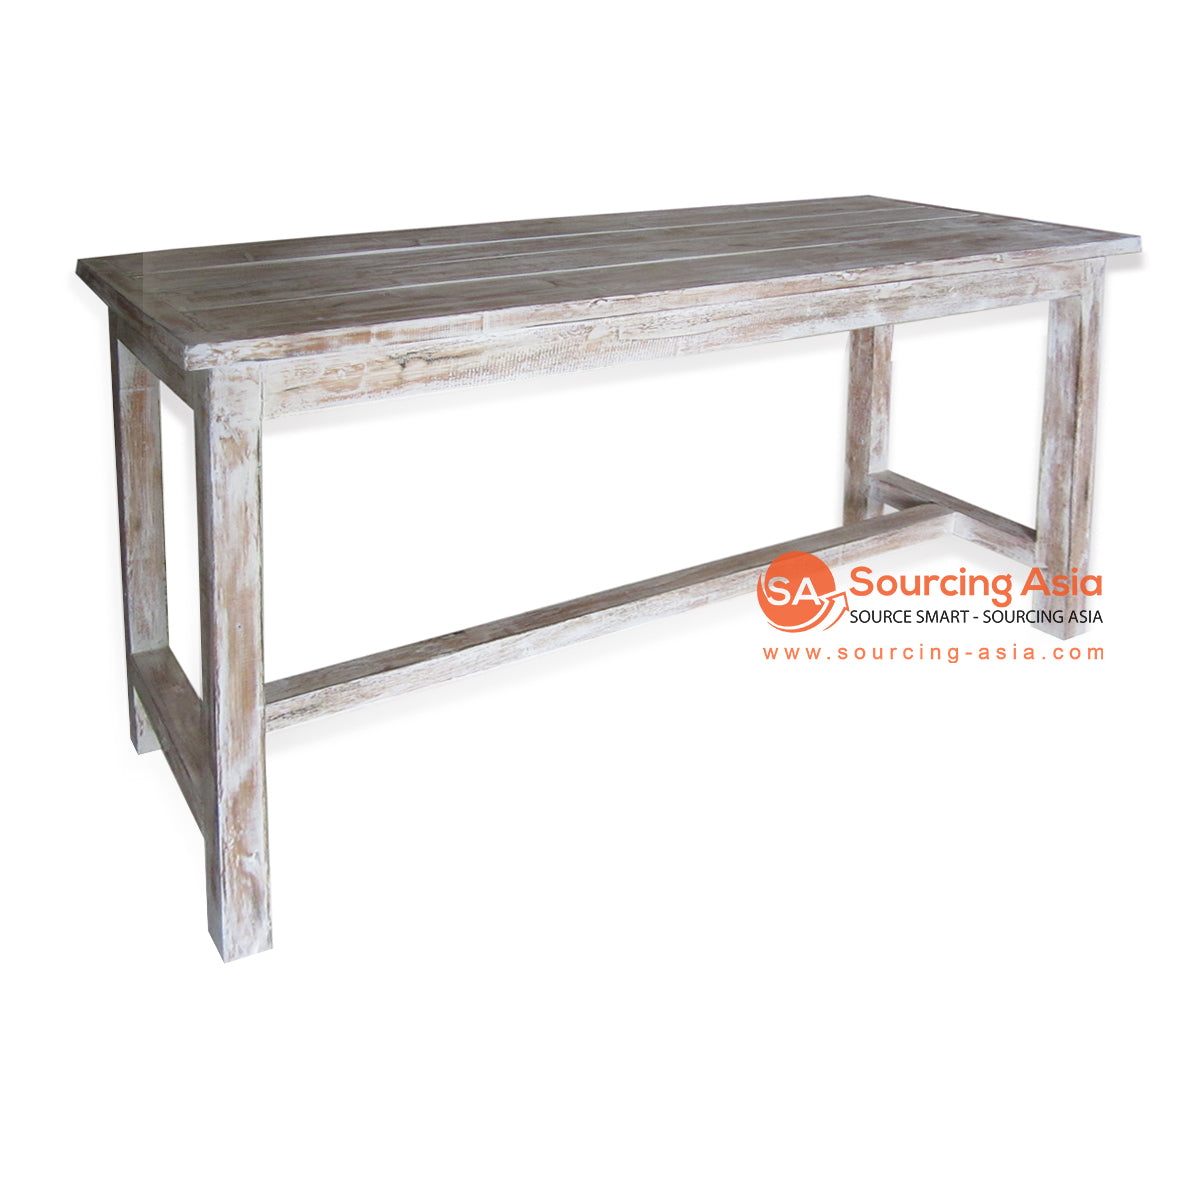 THE135BW CONSOLE TABLE BROWN WASH